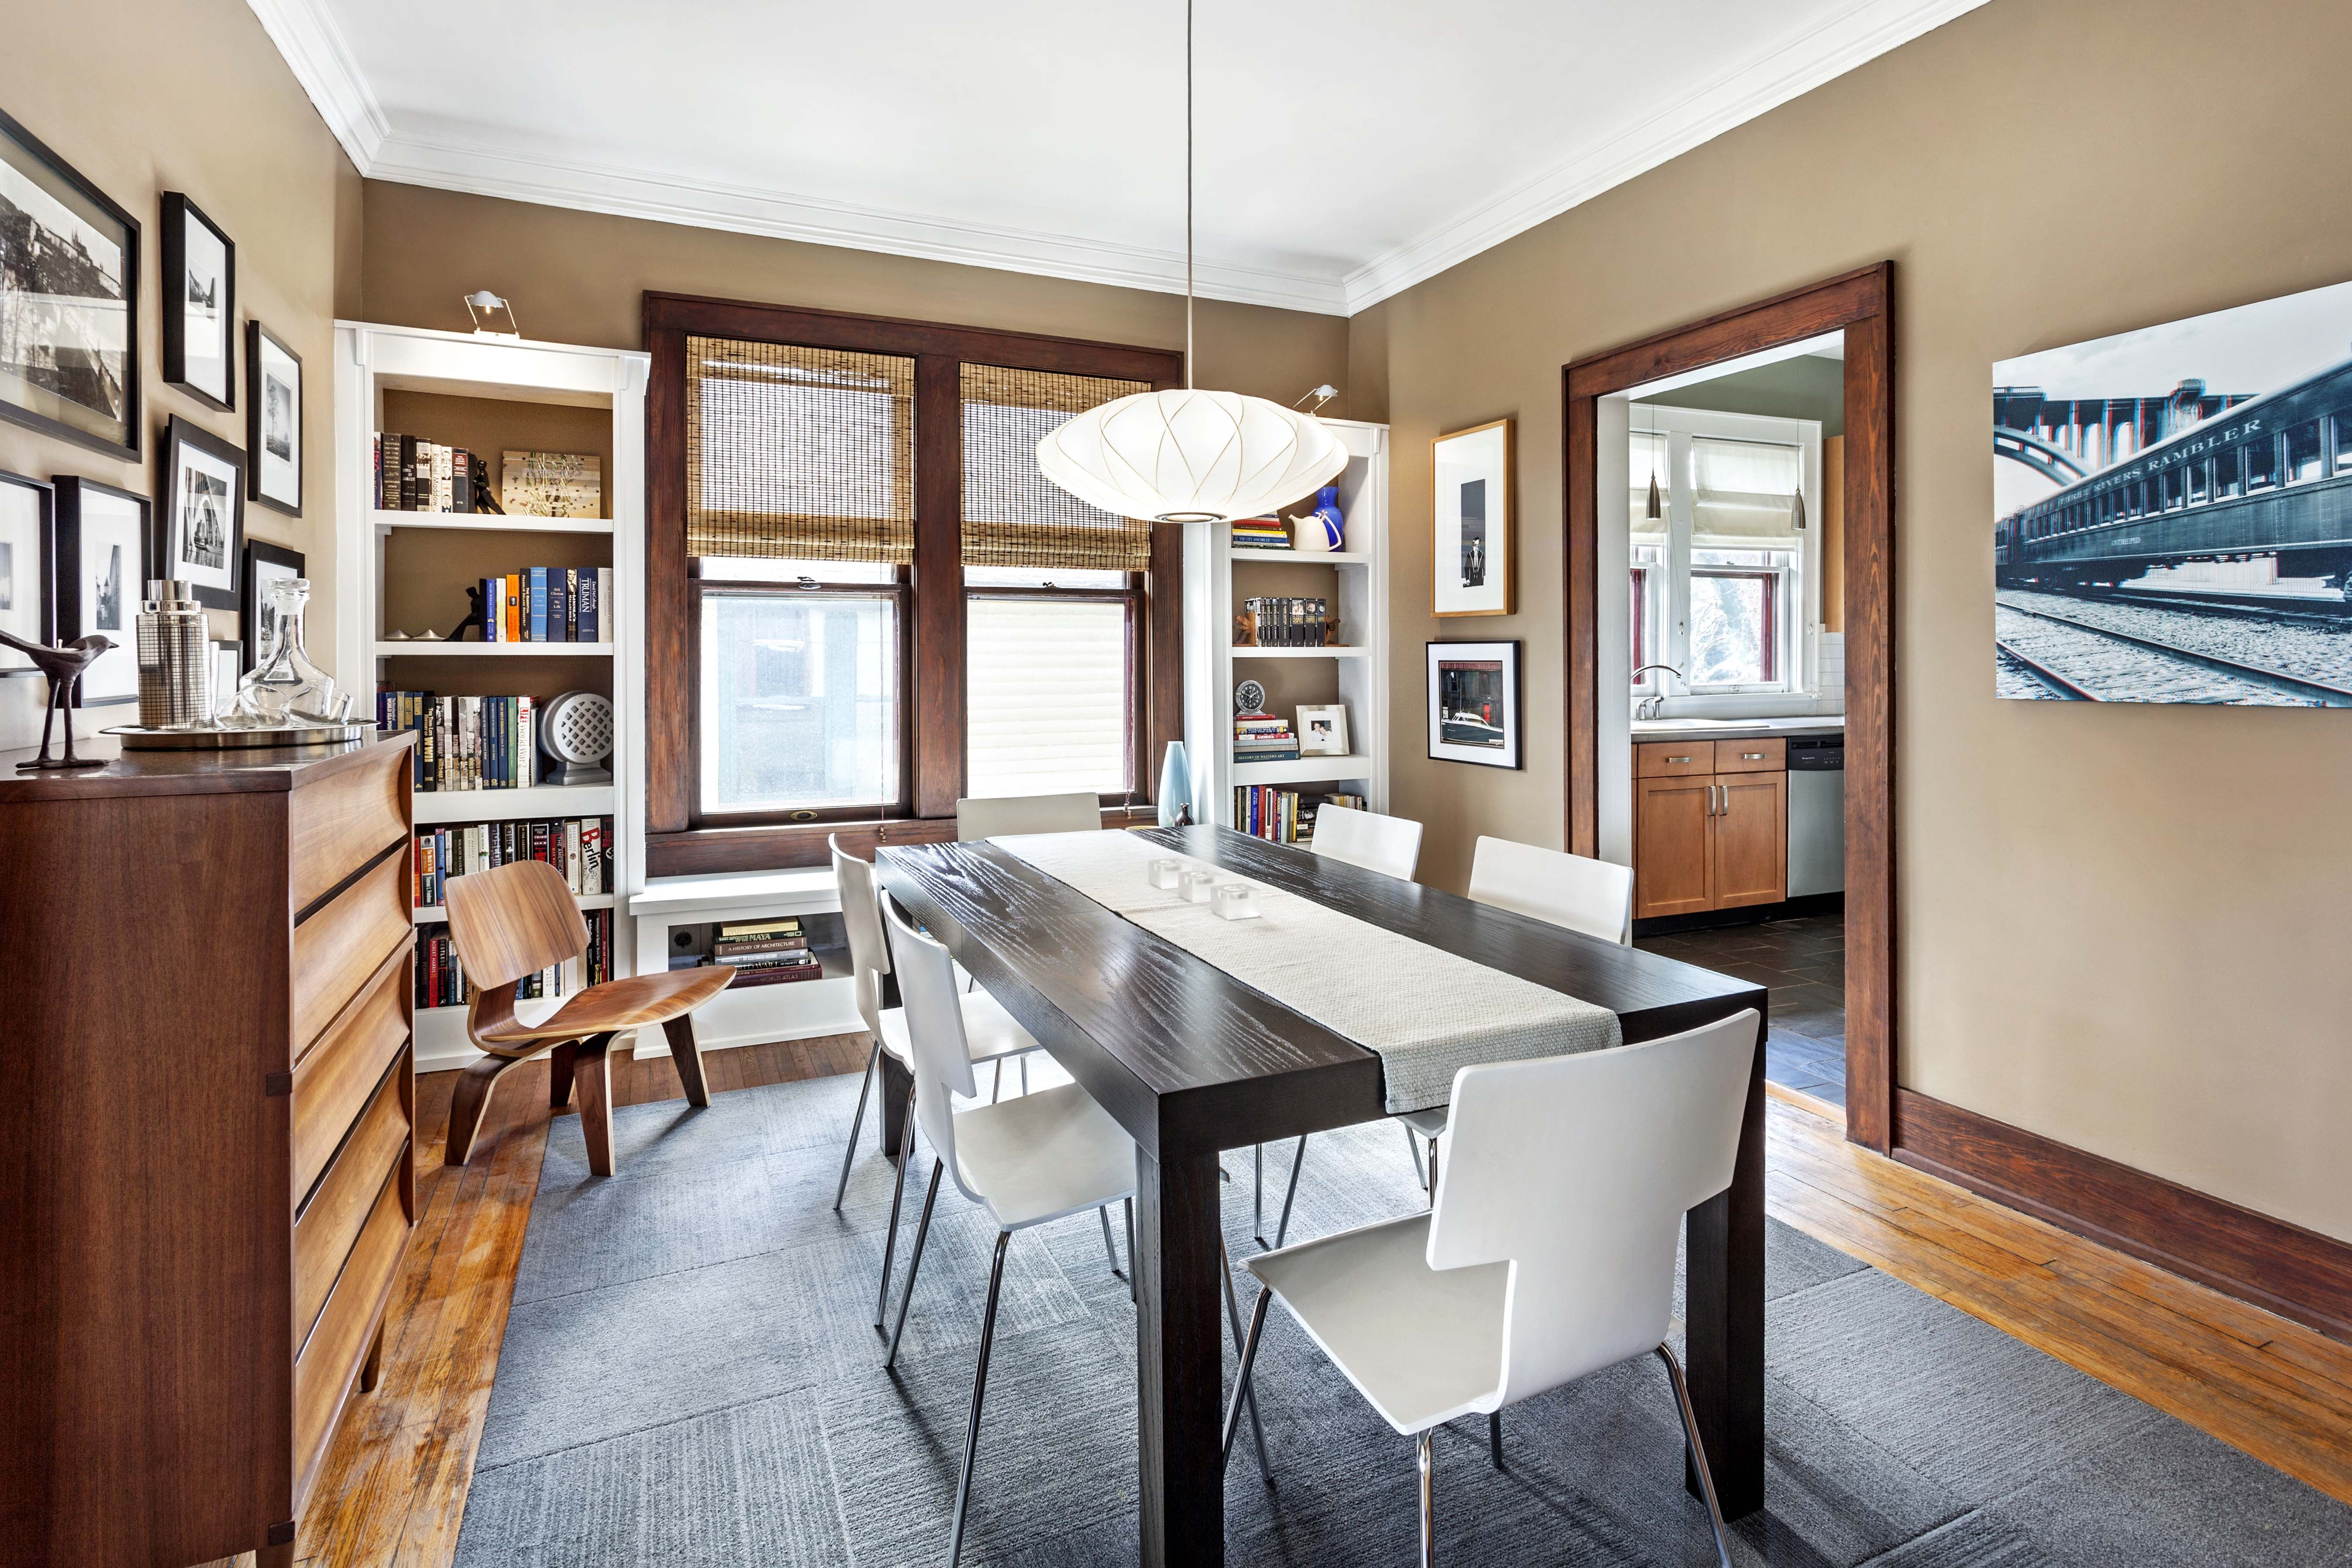 Dining Room In Renovated Craftsman 1920 Bungalow Mix Of Modern And Historic Old